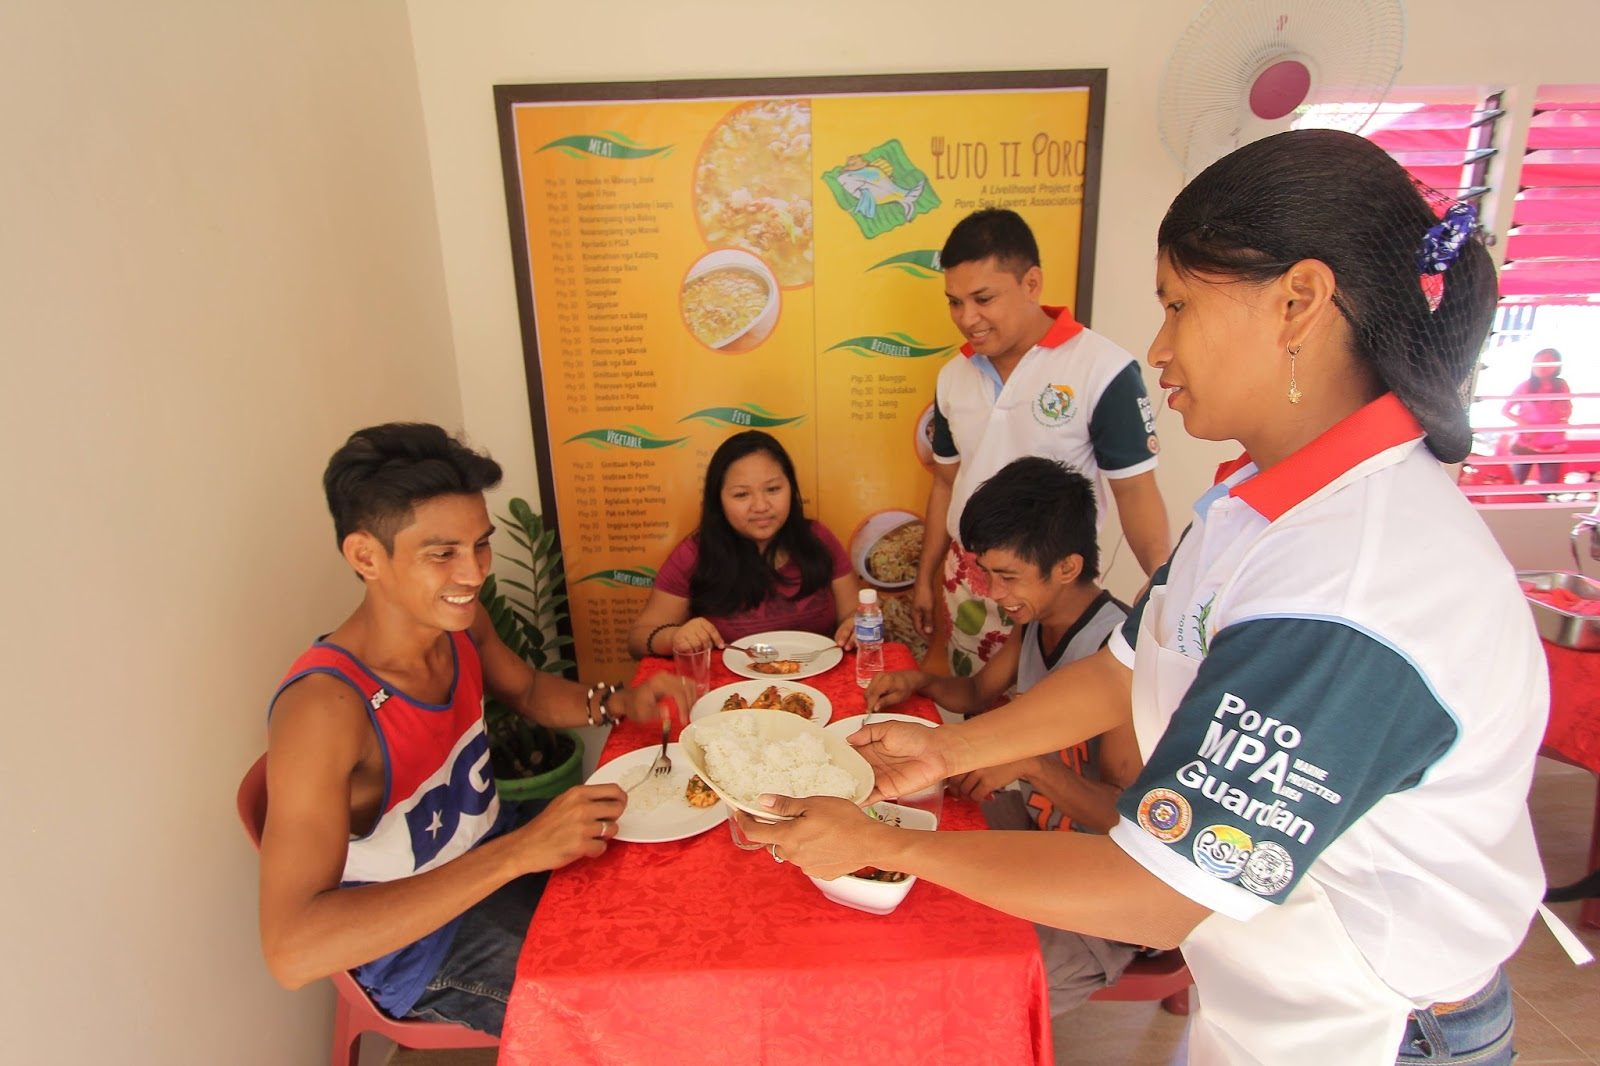 Food service livelihood program for Poro fishers